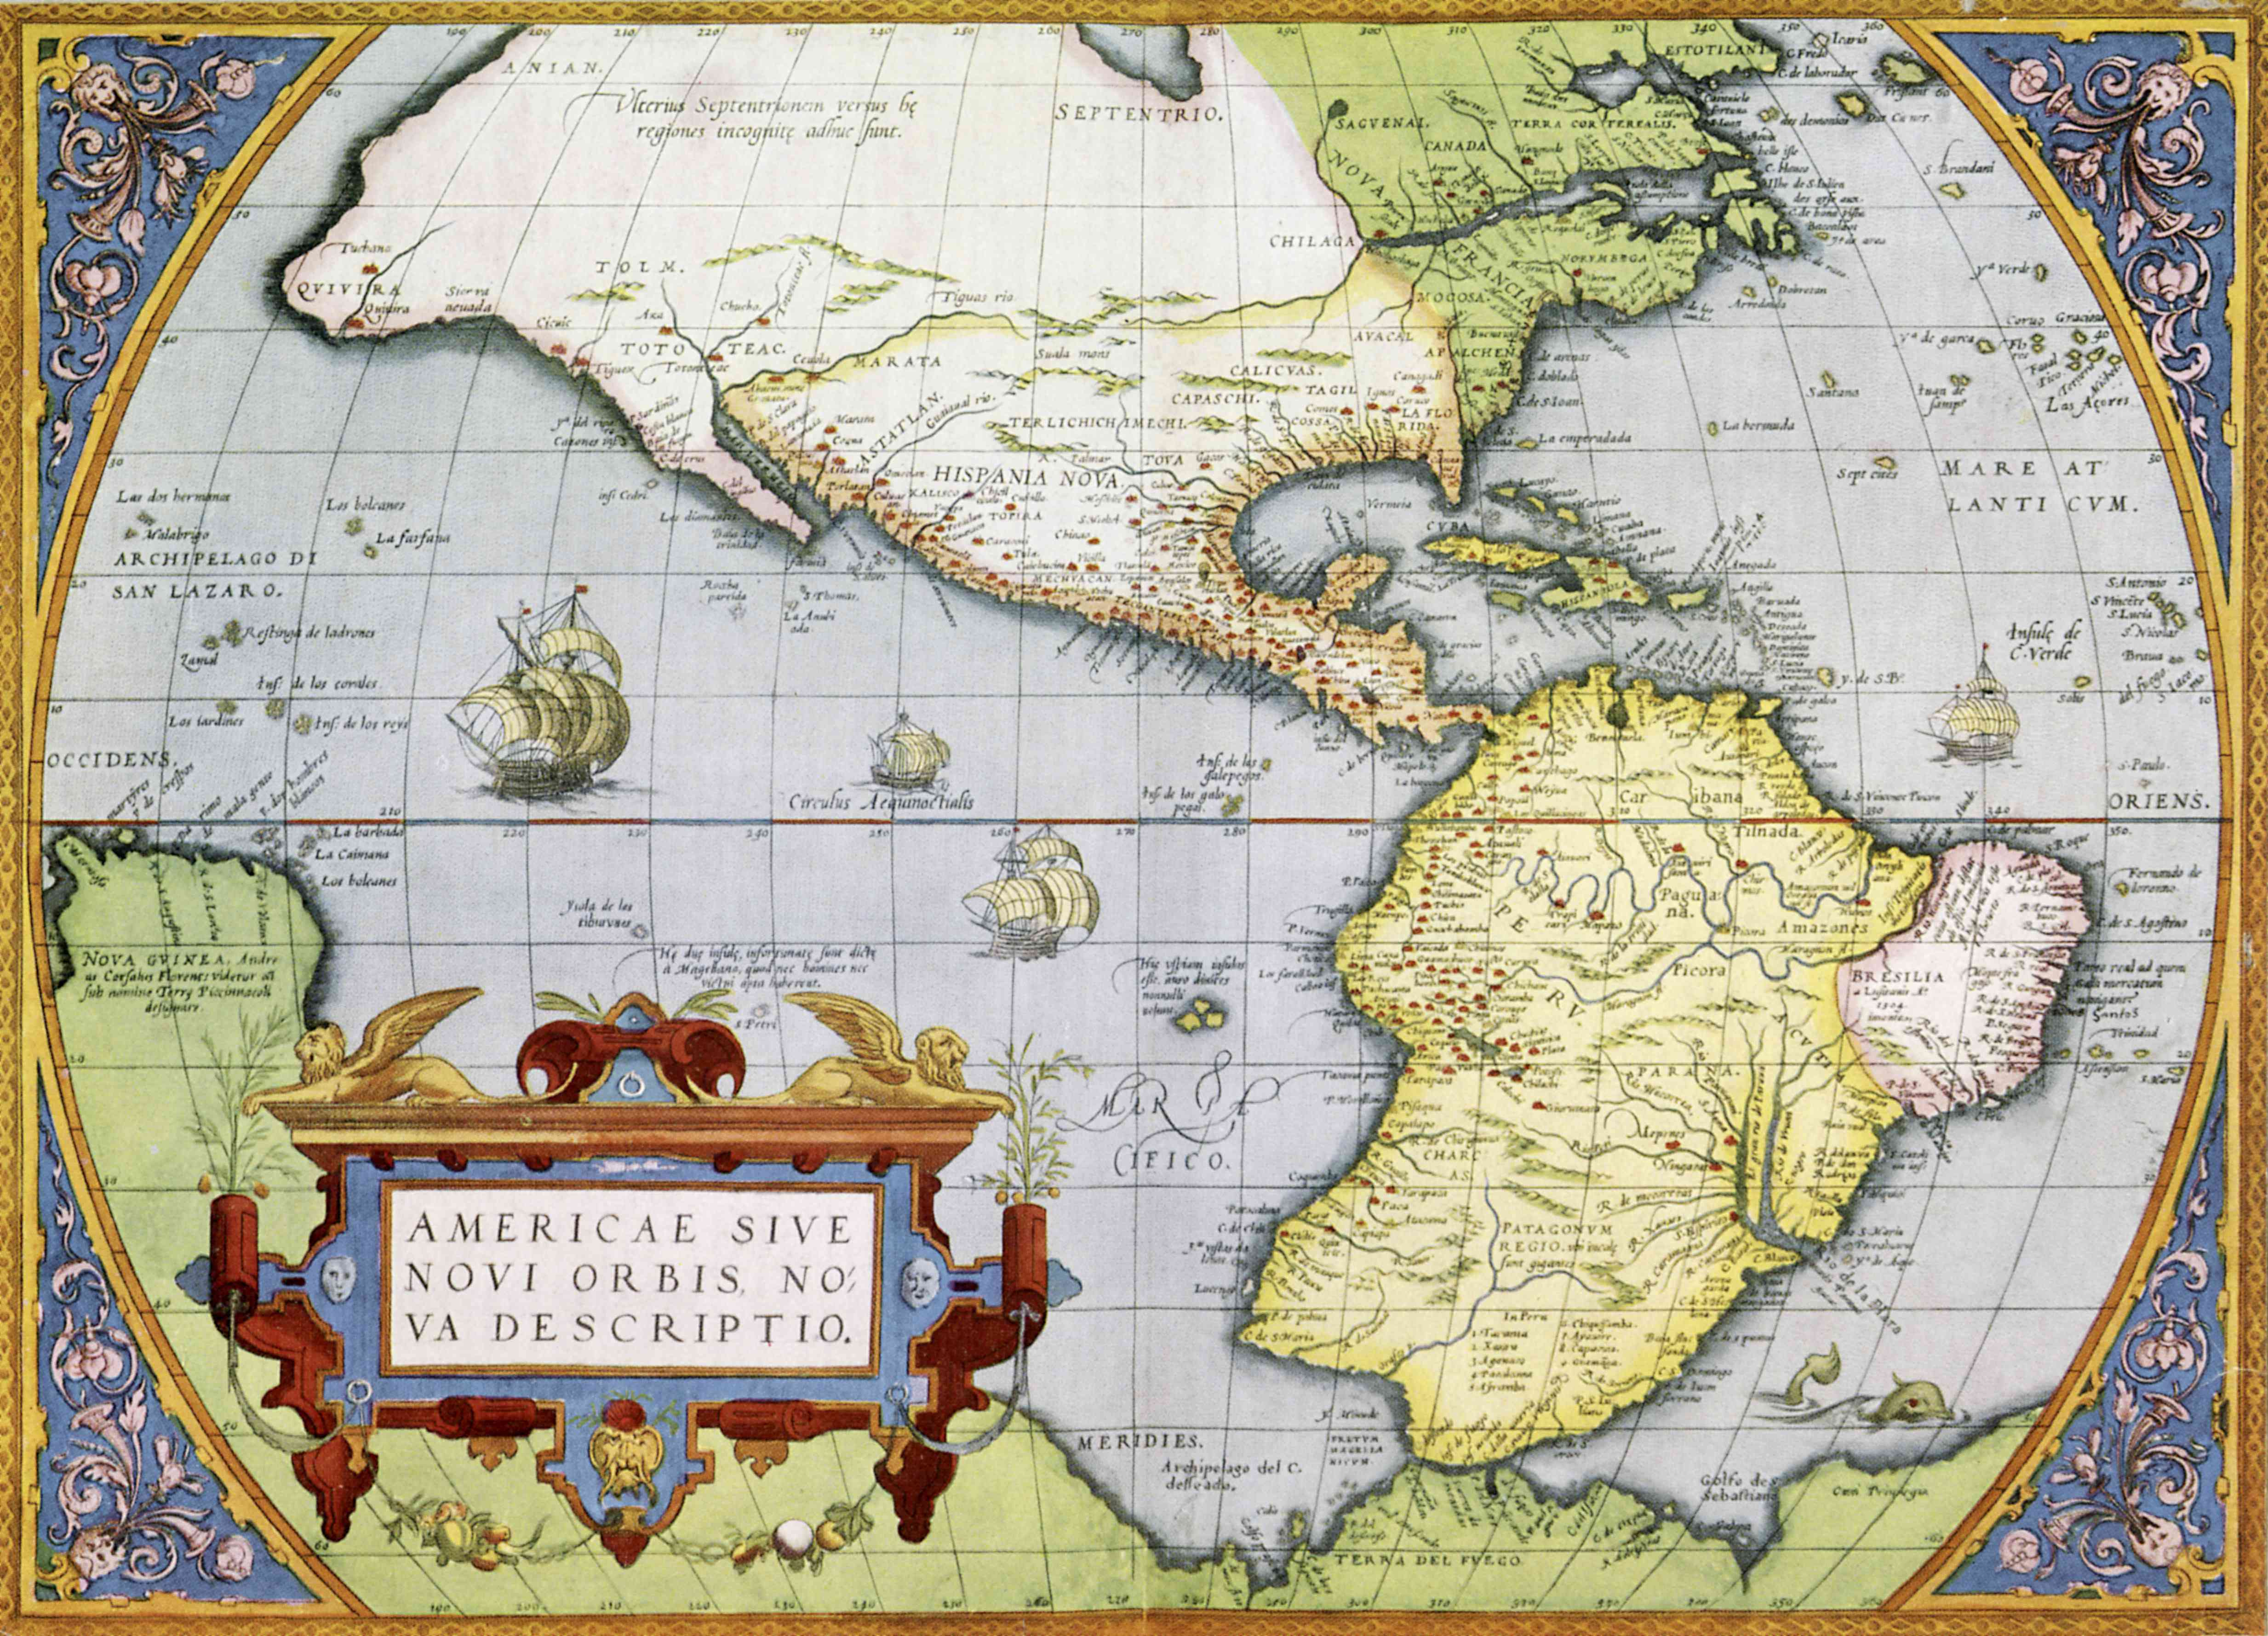 Map of America or the New World in Theatrum Orbis Tearrarum by Abraham Ortelius, 1570.